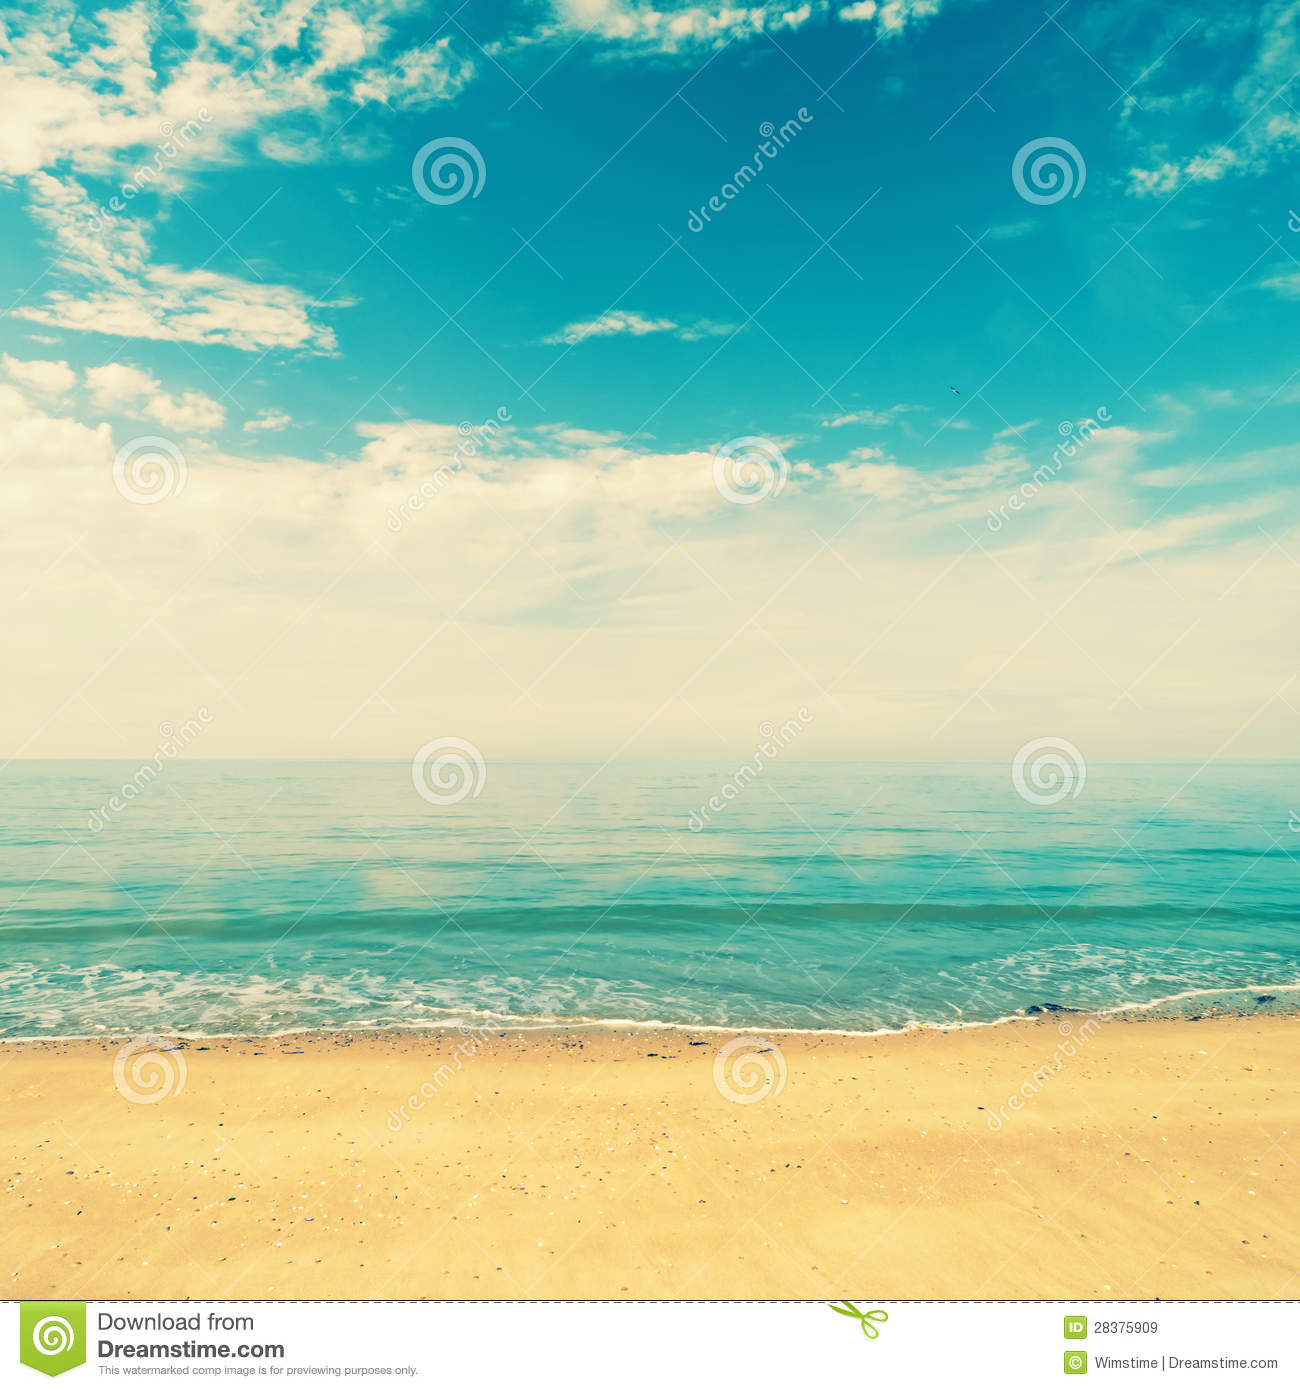 Beautiful Vintage Summer Seaside Illustration Royalty Free: Retro Beach Stock Image. Image Of Summer, Blue, Ocean